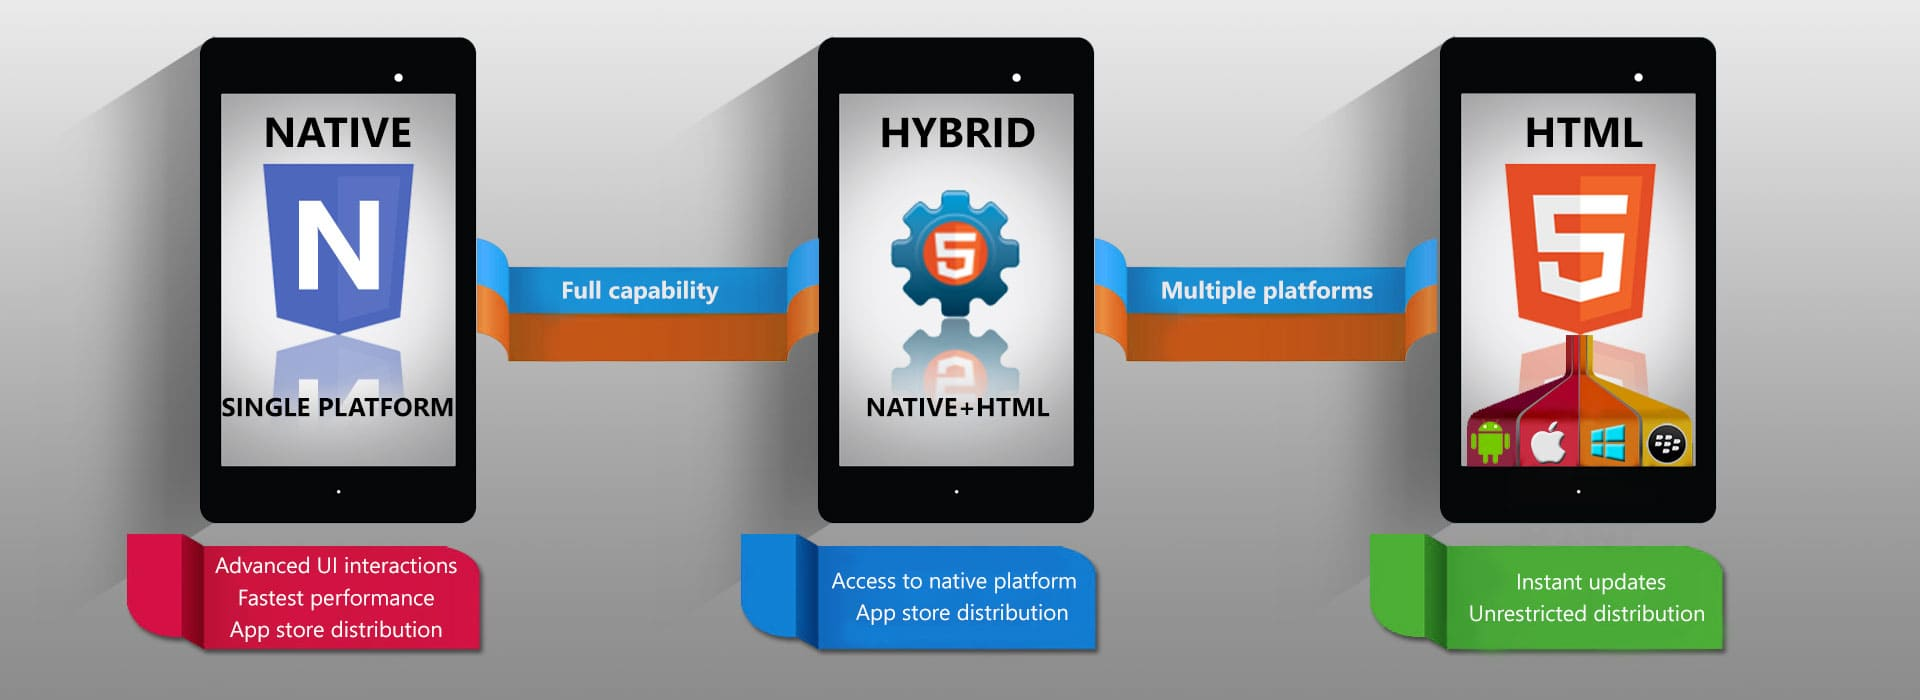 native vs hybrid vs HTML5